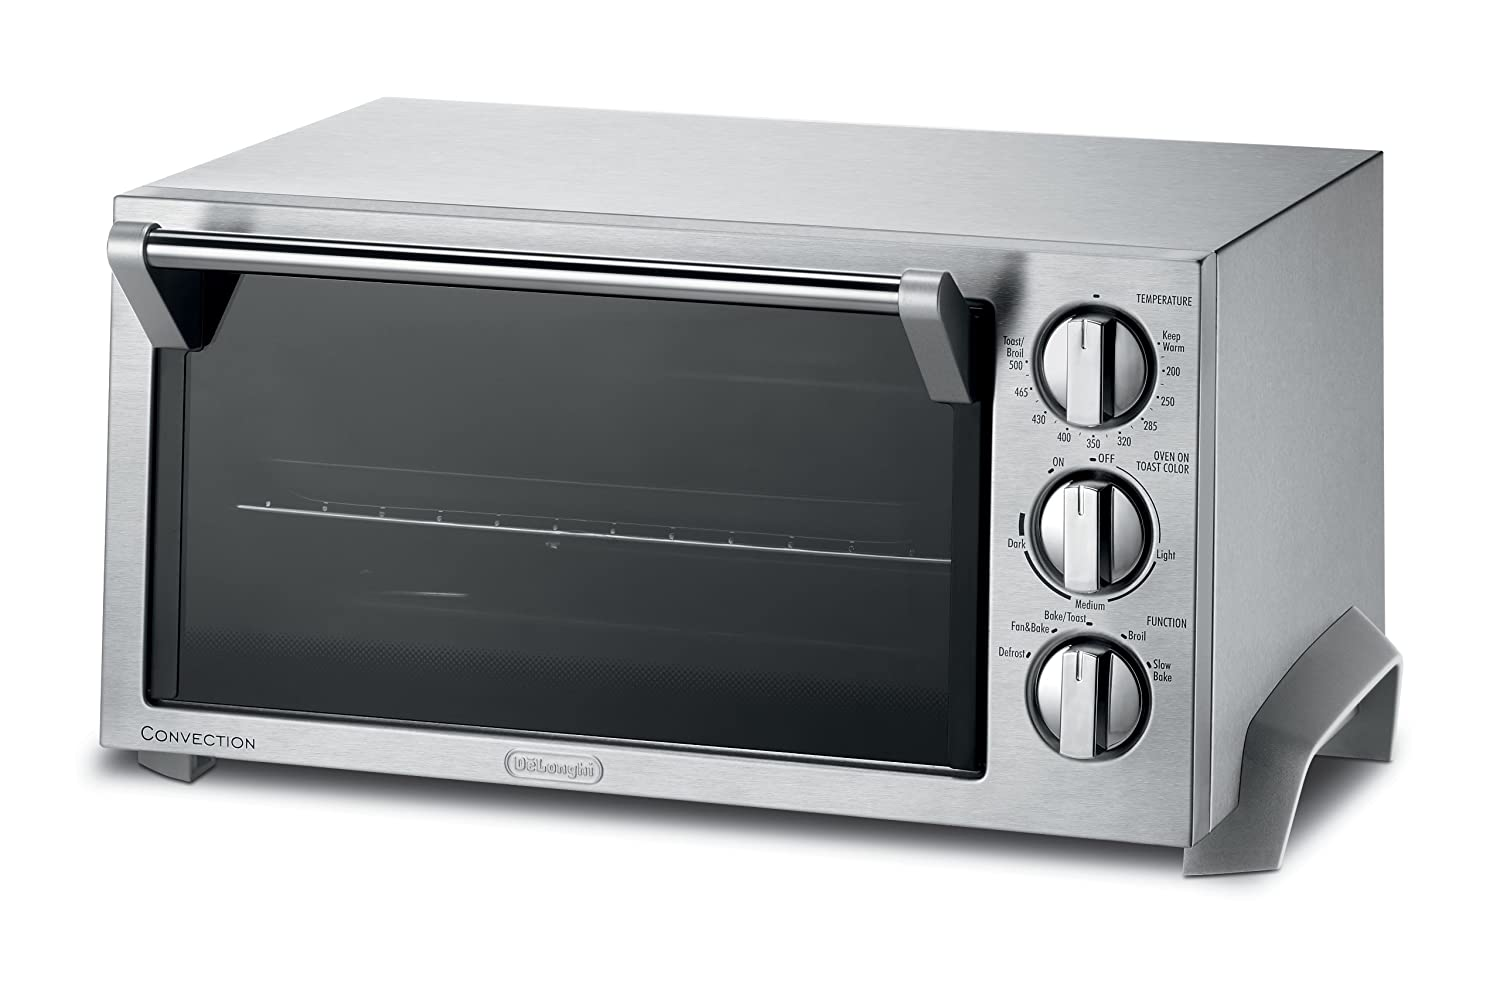 DeLonghi EO1270 6-Slice Convection Toaster Oven, Stainless Steel